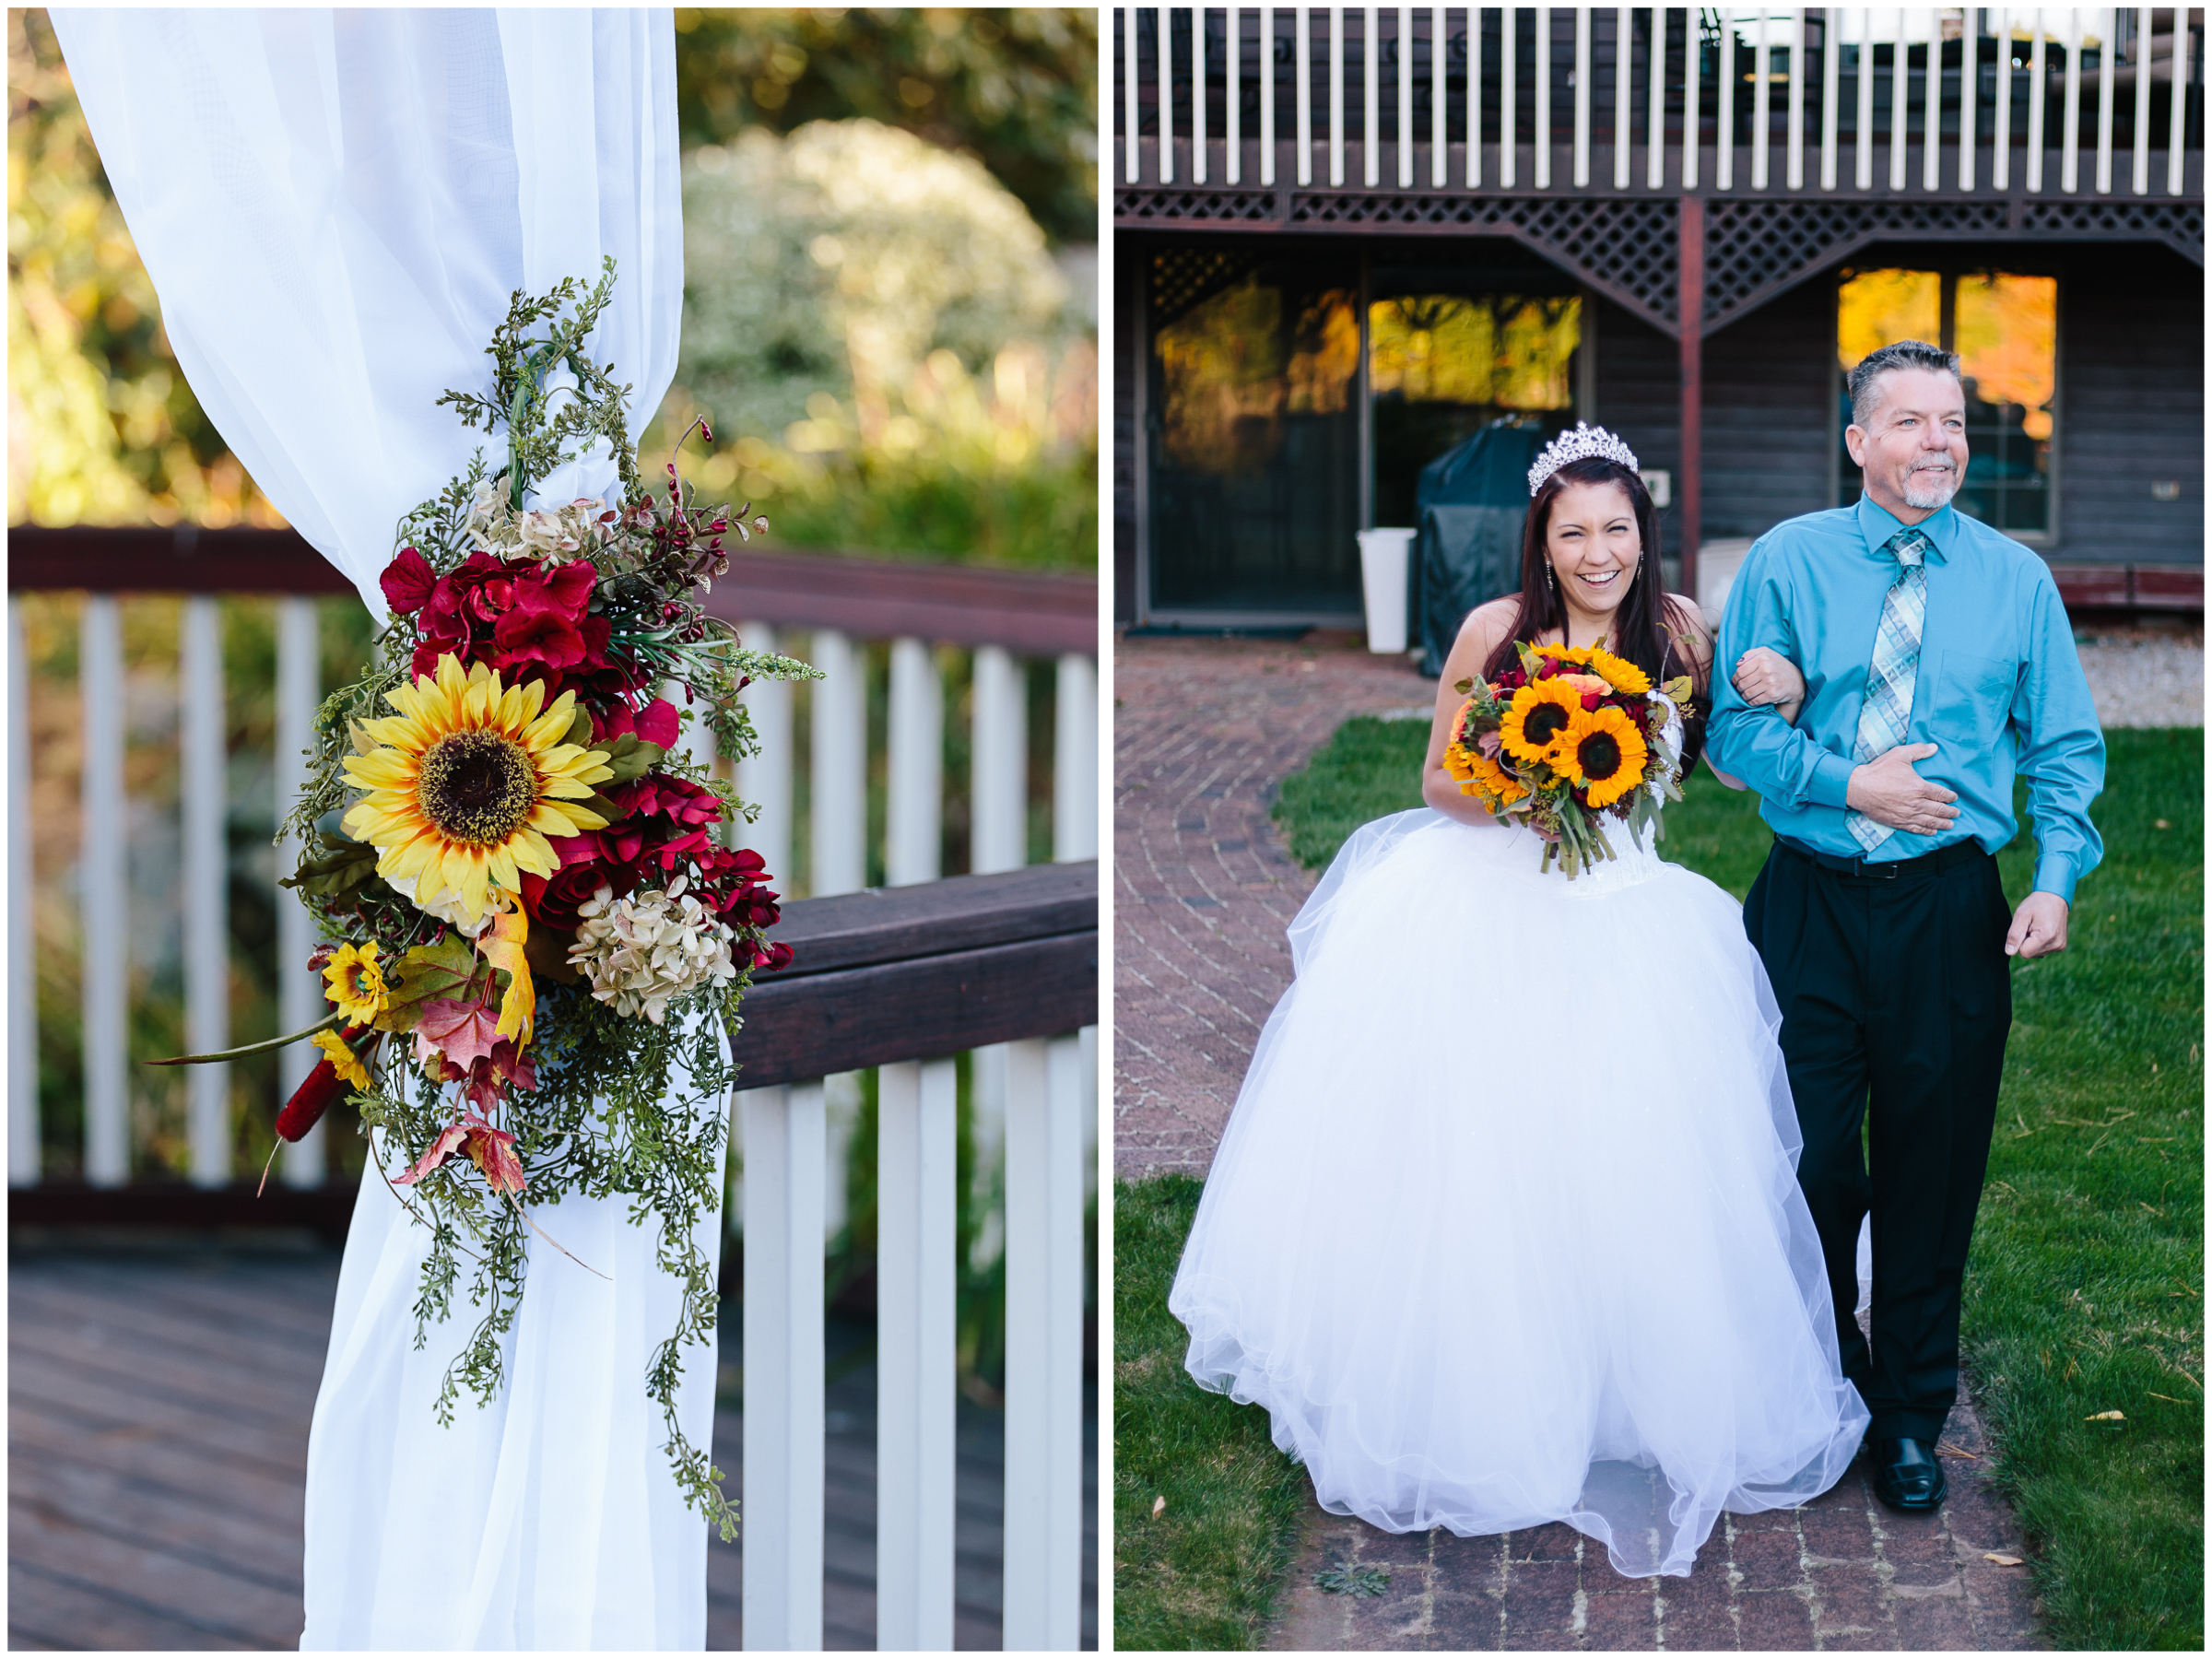 Ashleigh Laureen Photography Journalistic Fall Wedding in Hooksett, New Hampshire, Bride and Father Ceremony